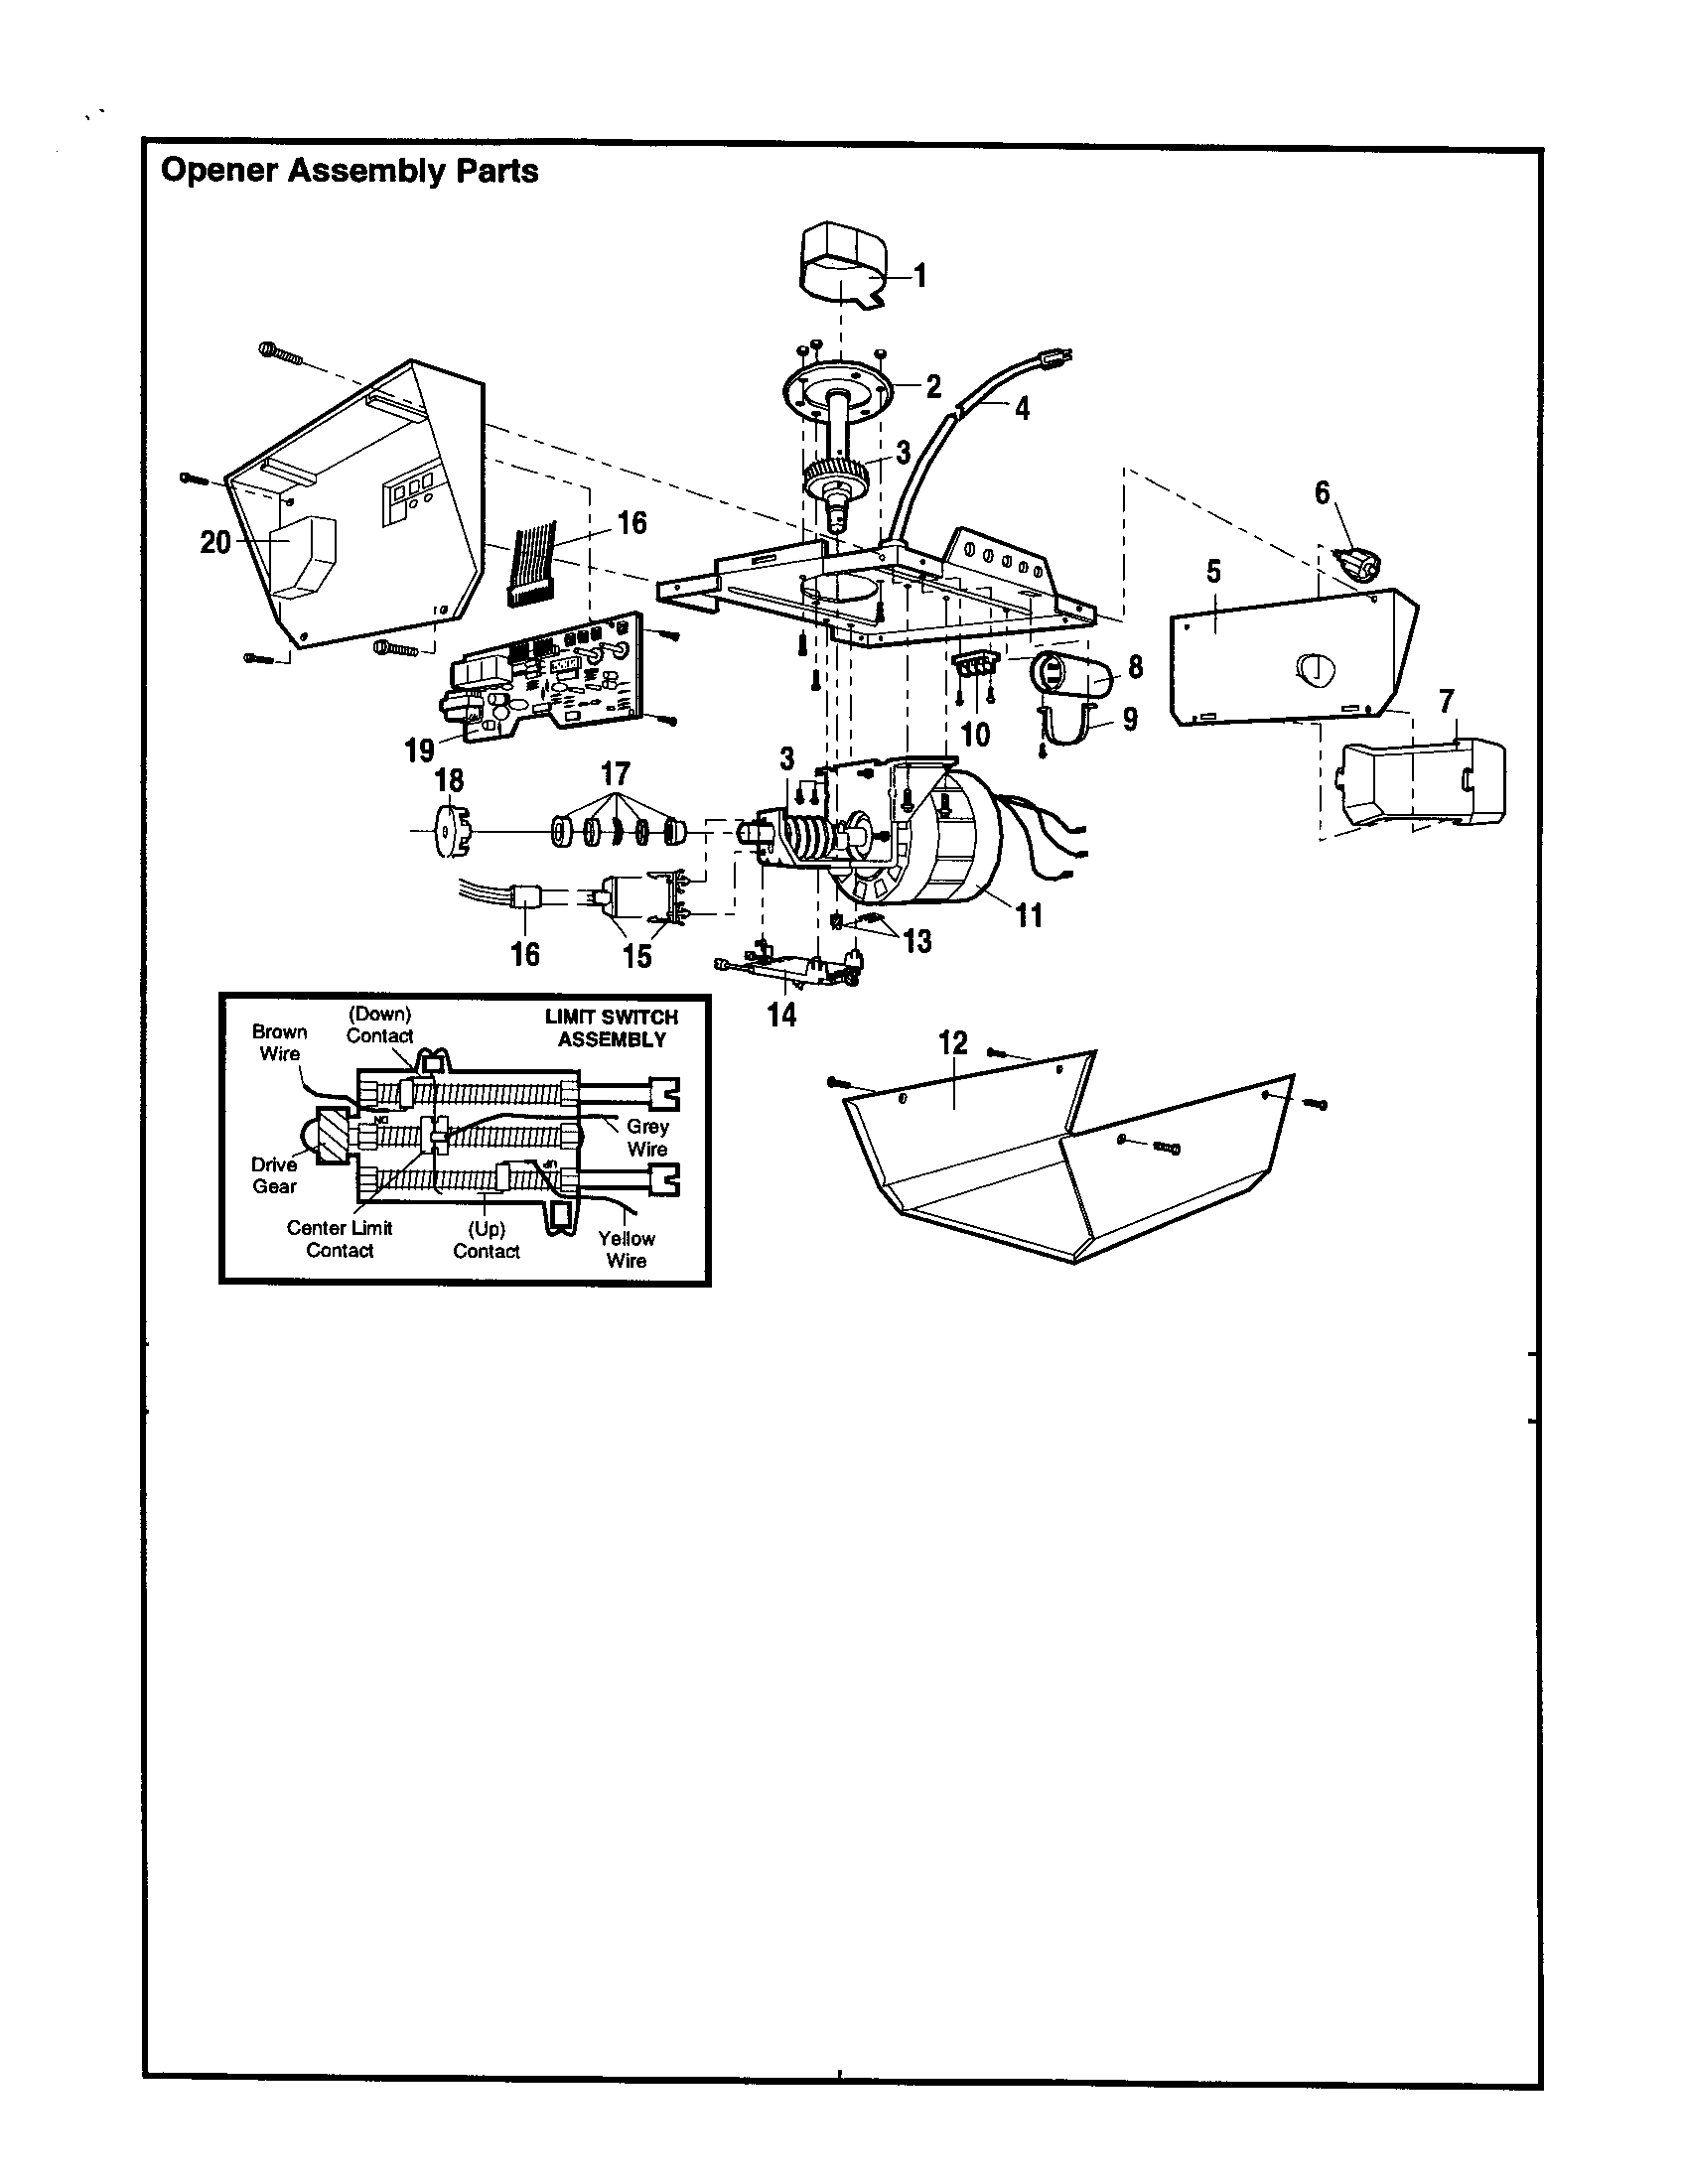 Sears Craftsman Parts Diagram